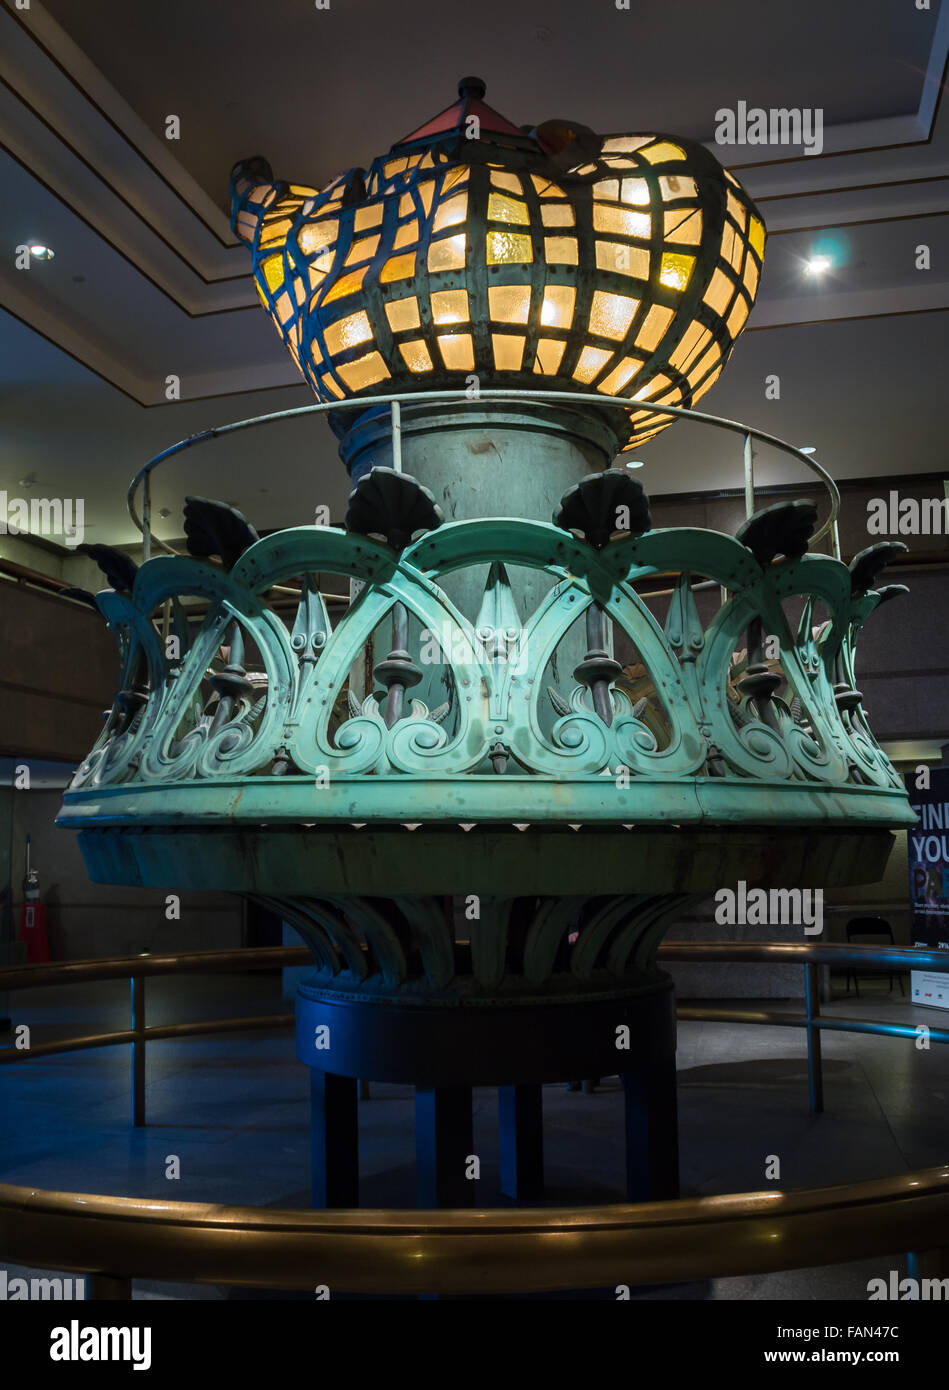 The original torch of the State of Liberty, displayed in the foyer of the Statue of Liberty museum on Liberty Island, - Stock Image